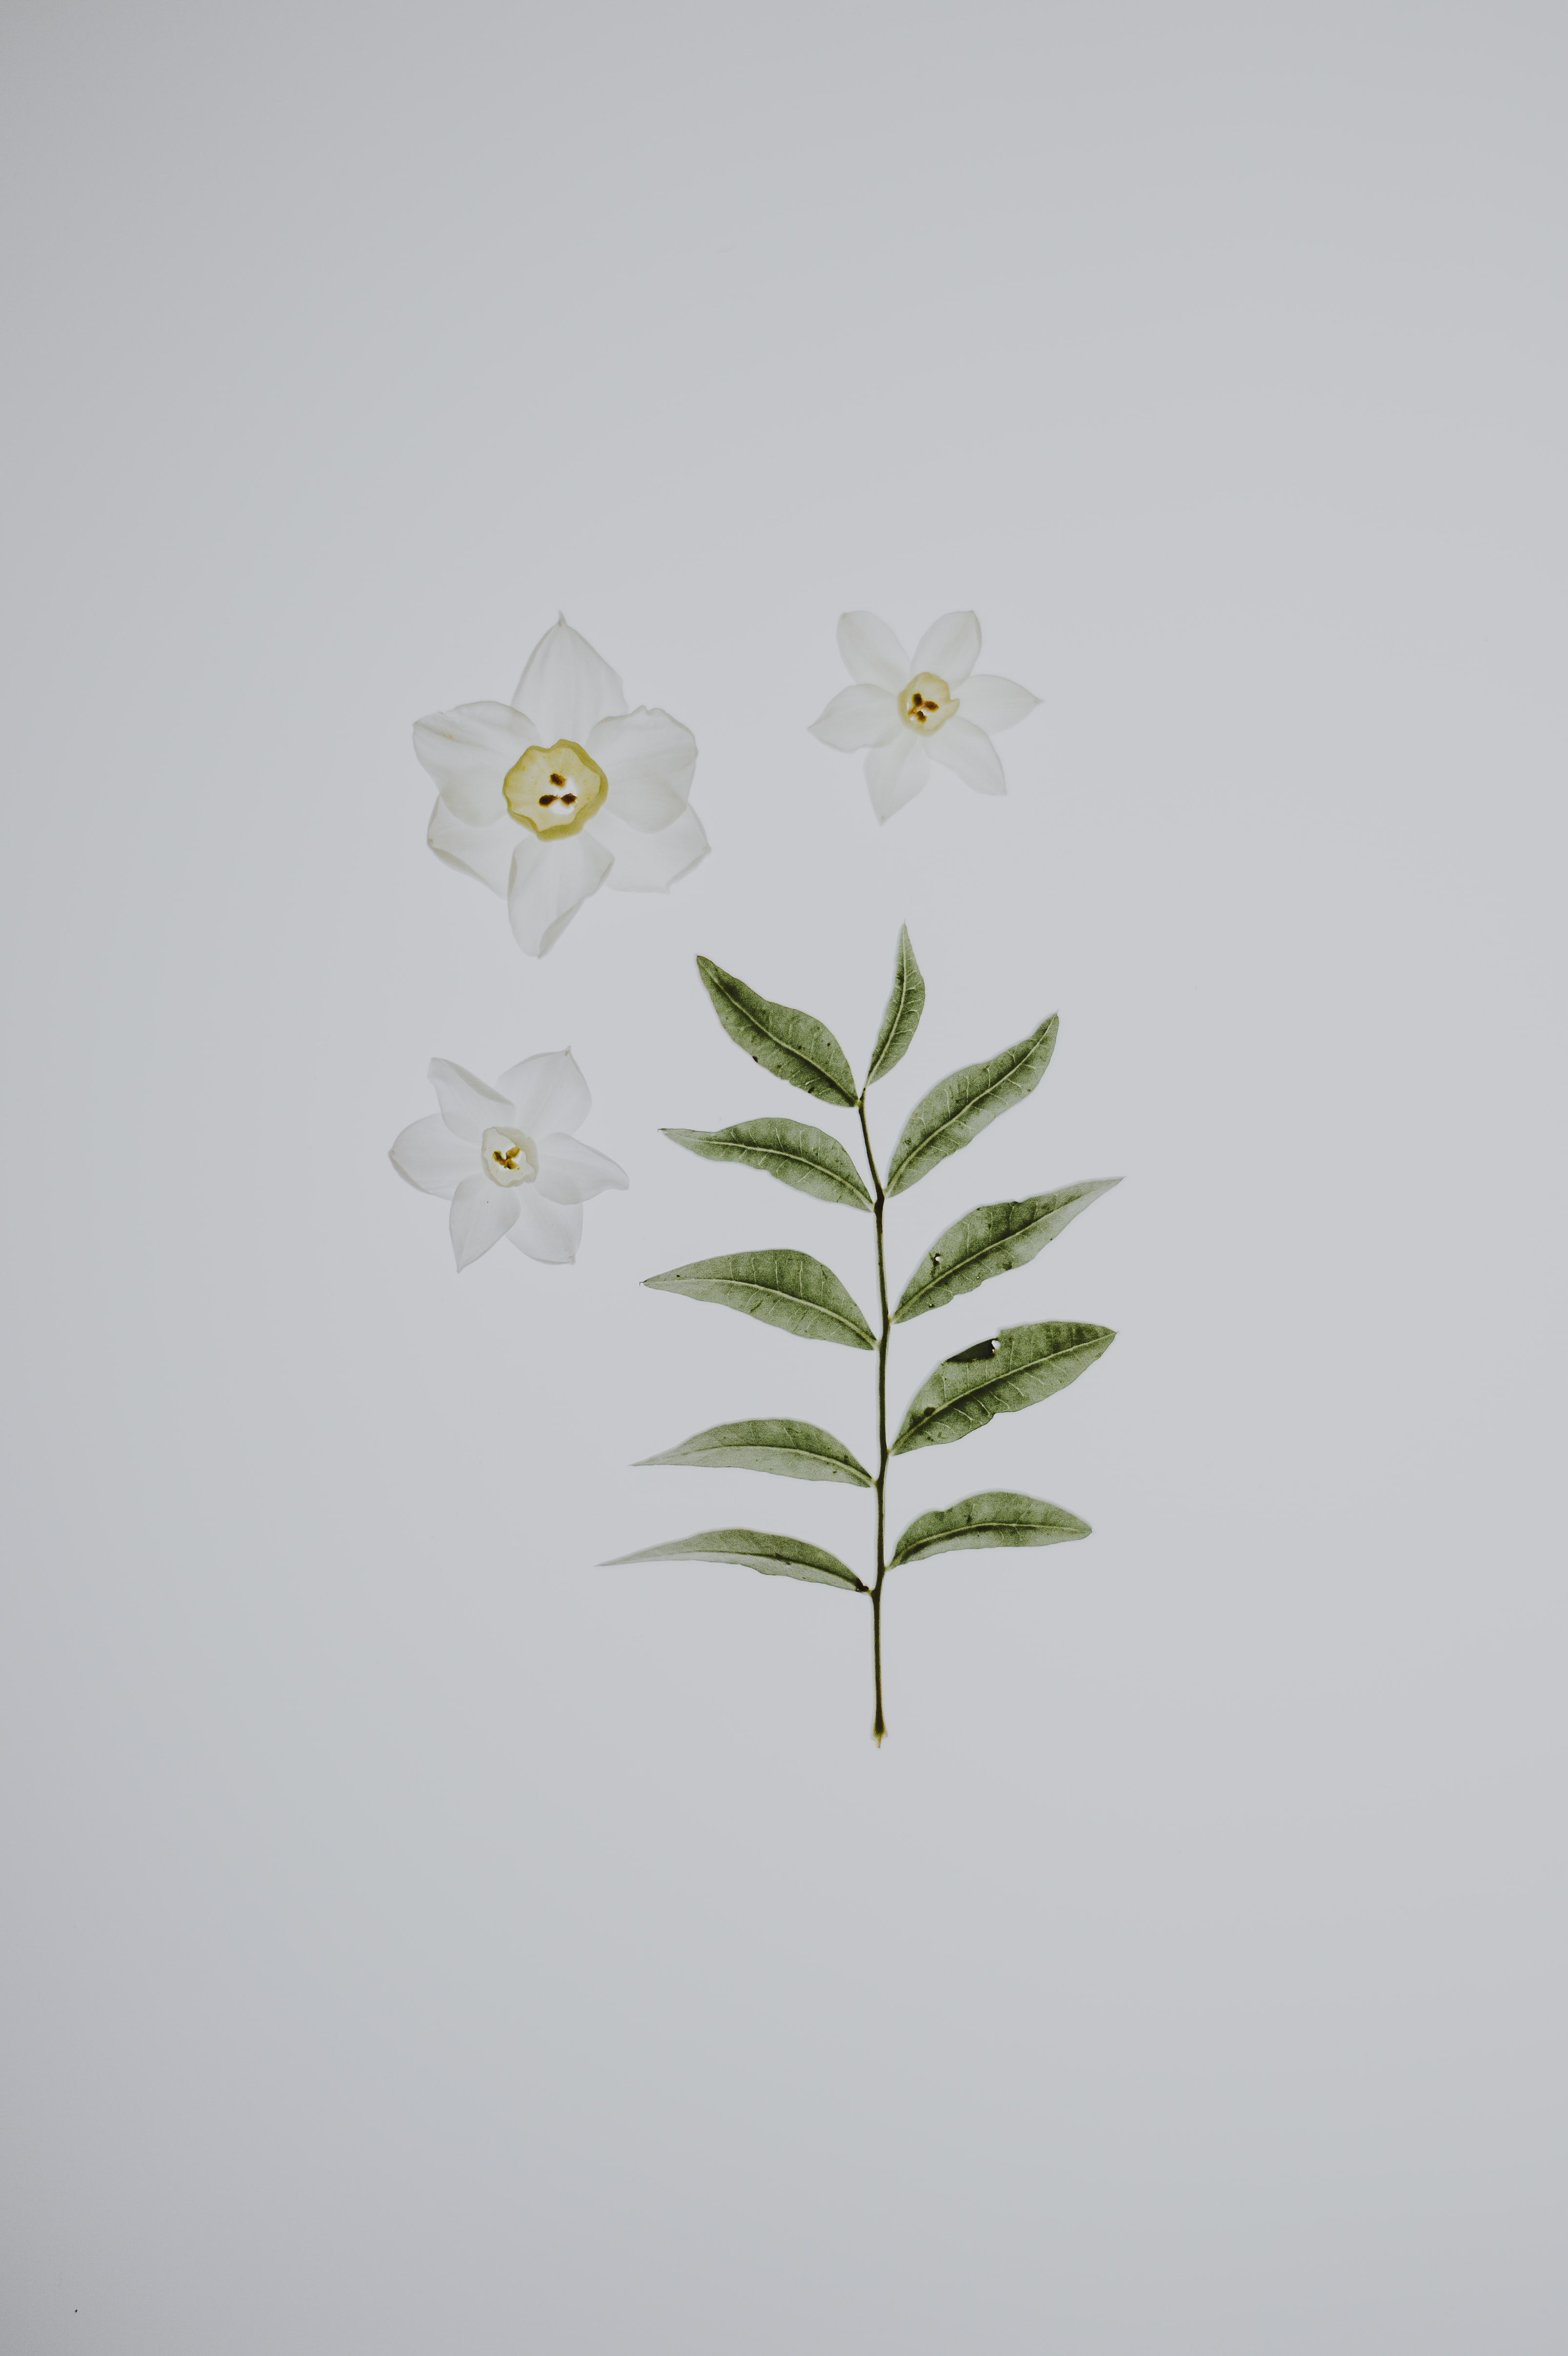 flat lay photography of white flowers and leaves